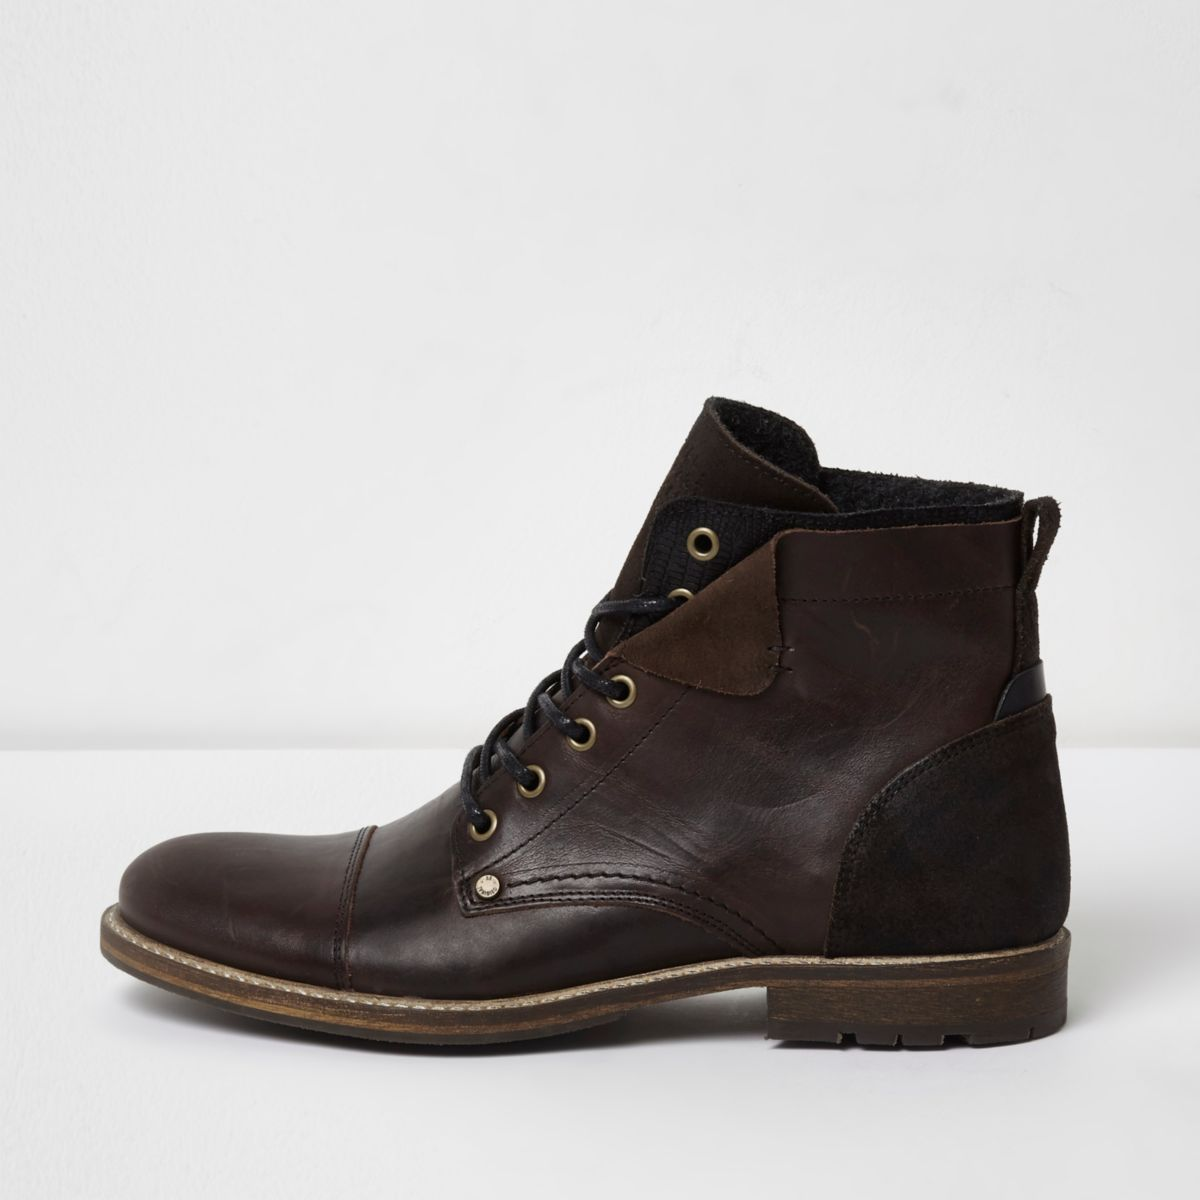 Dark brown leather turn-down military boots